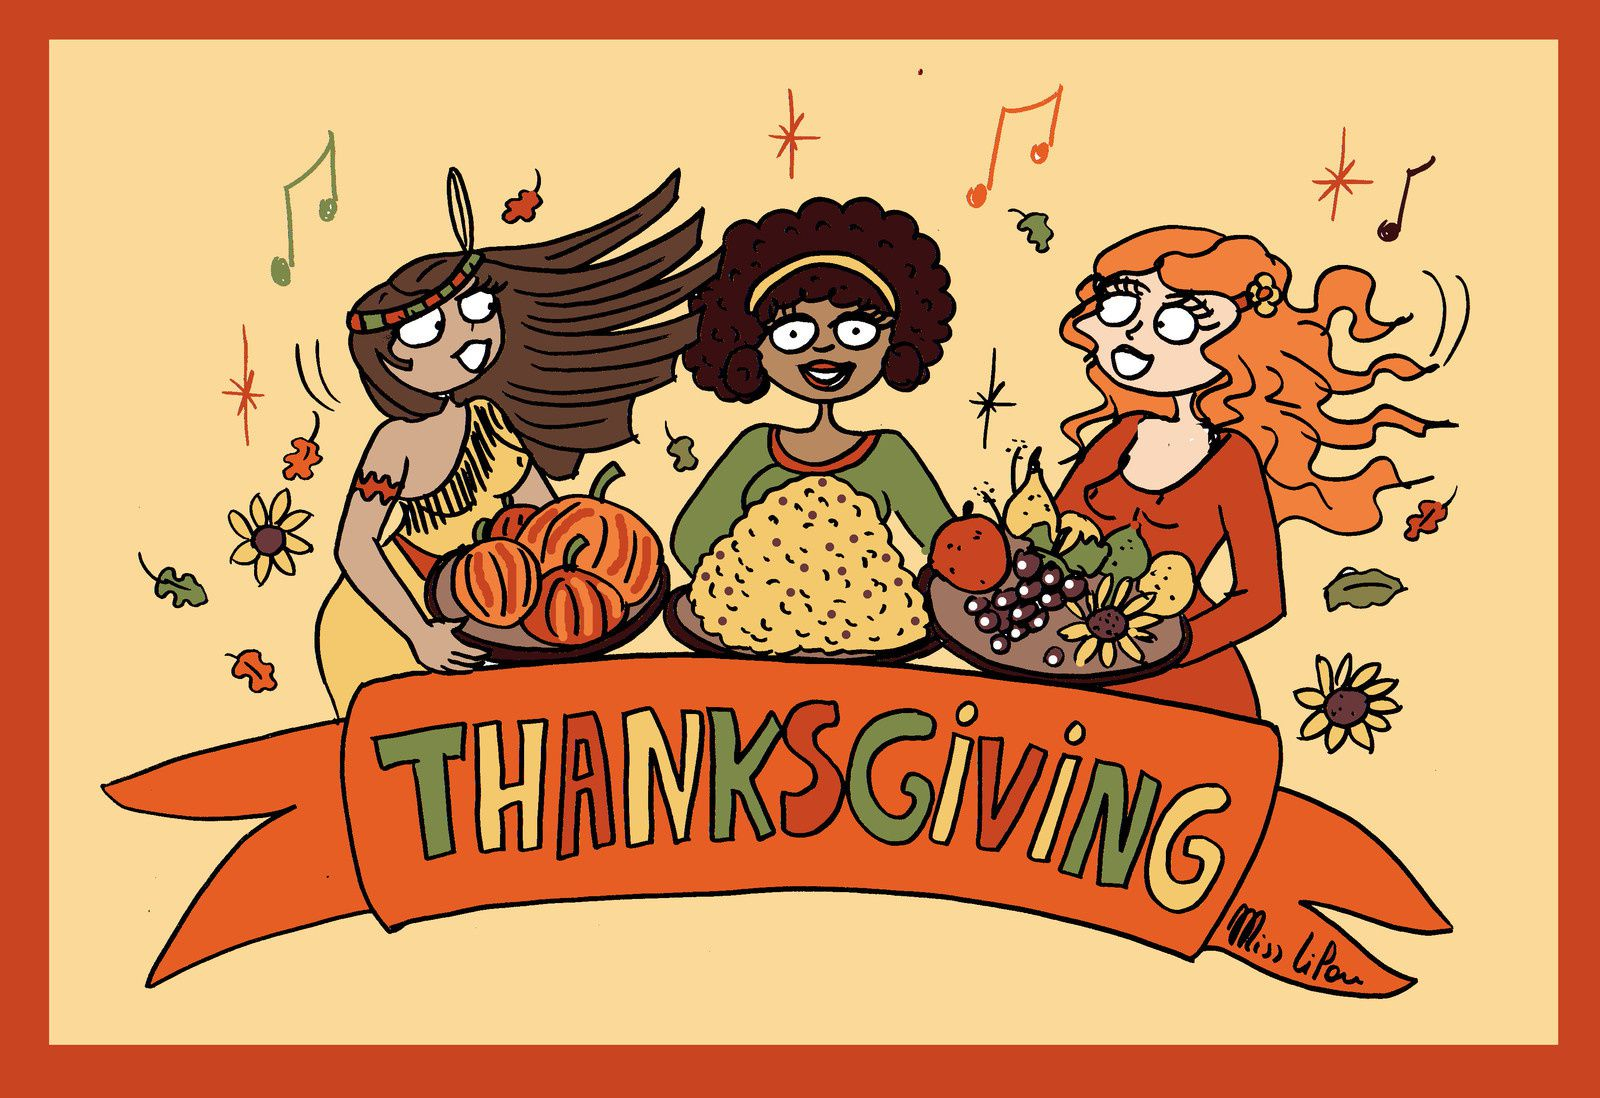 HAPPY THANKSGIVING !